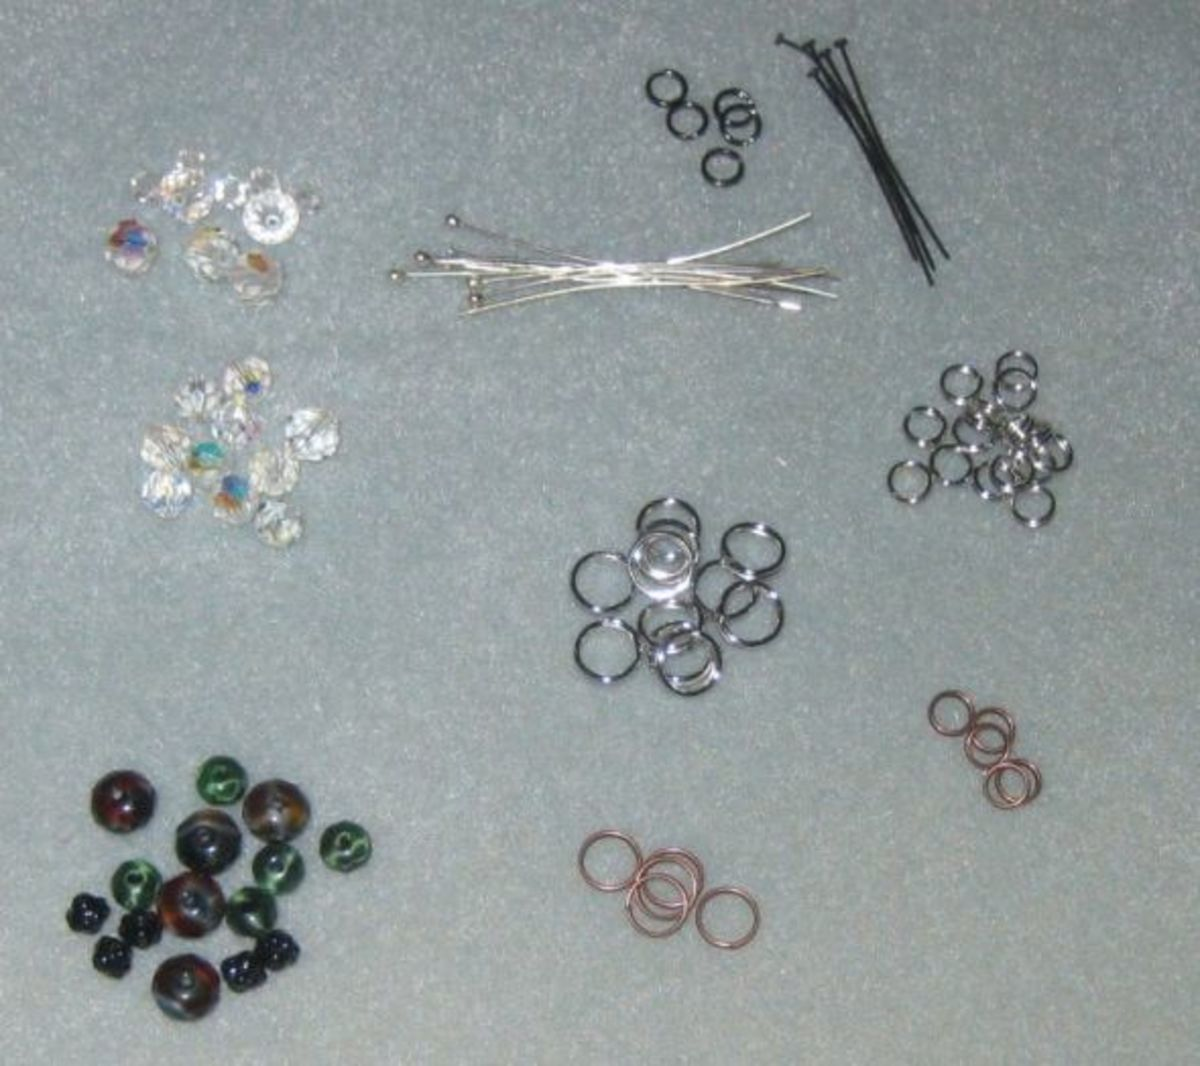 Supplies needed for making stitch markers:  split rings (those little circles that look like key rings), headpins, and beads. All photos here by Peggy Hazelwood.